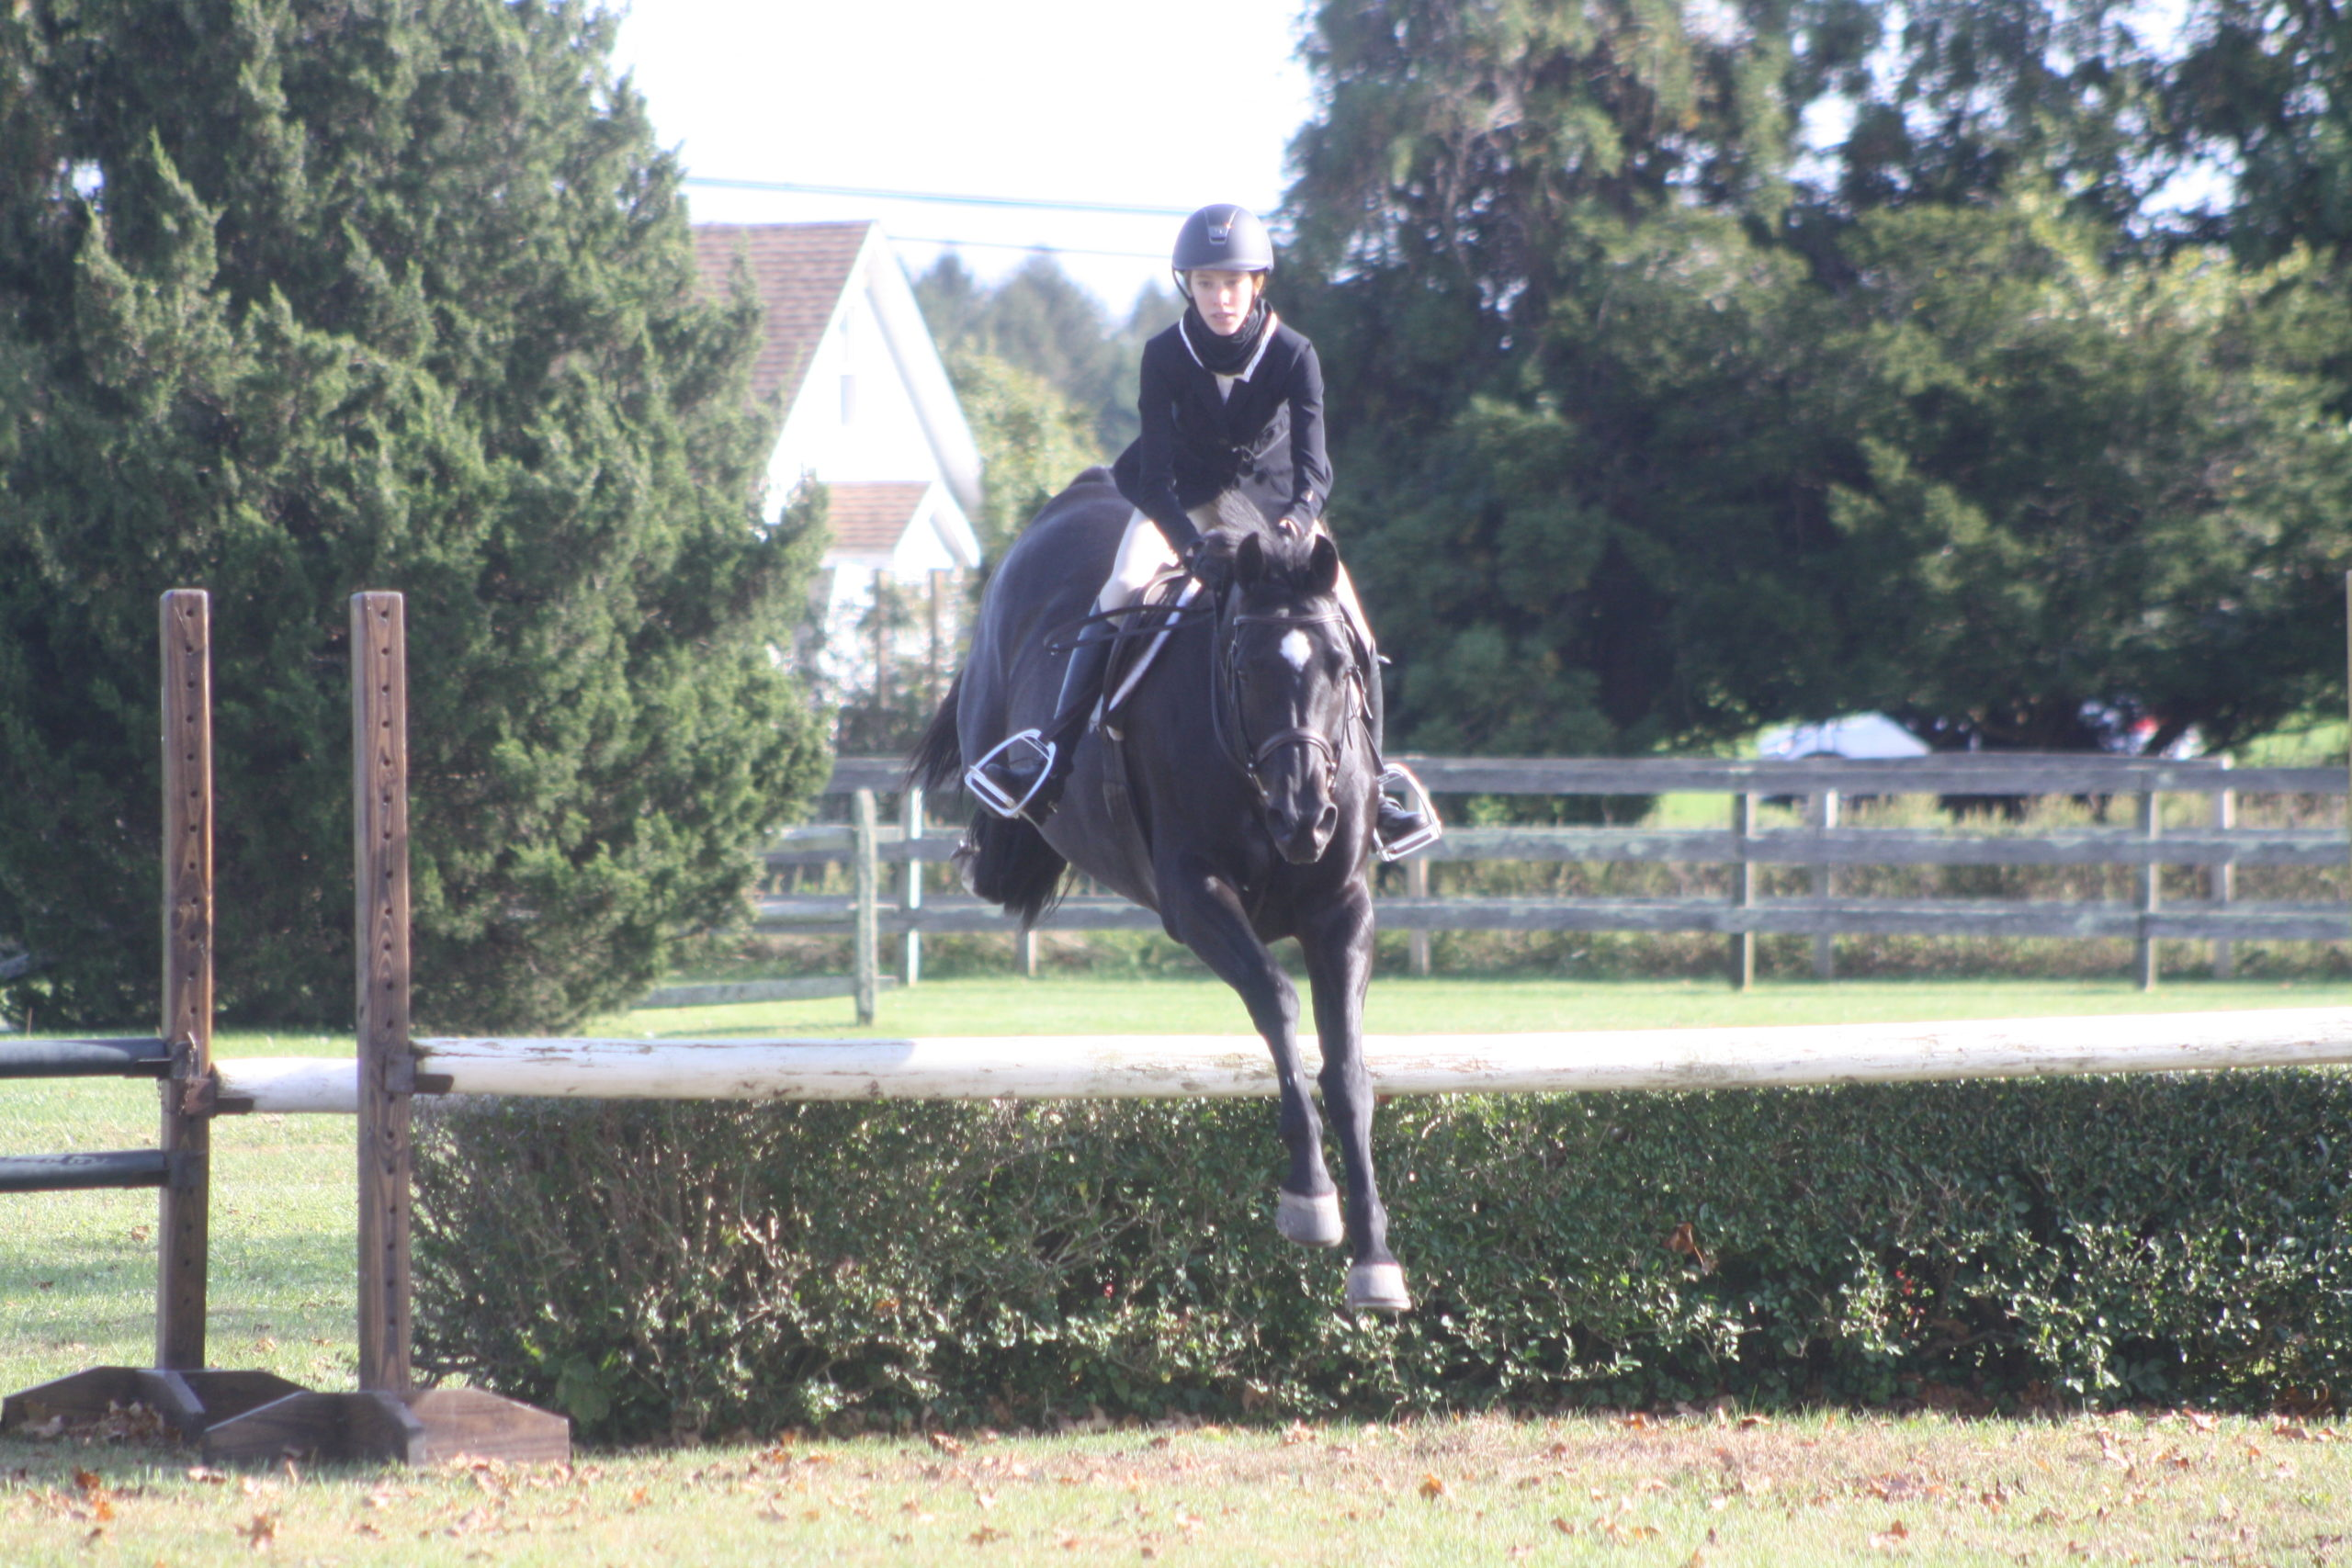 The Wolffer Estate Derby was held Sunday in Sagaponack. CAILIN RILEY